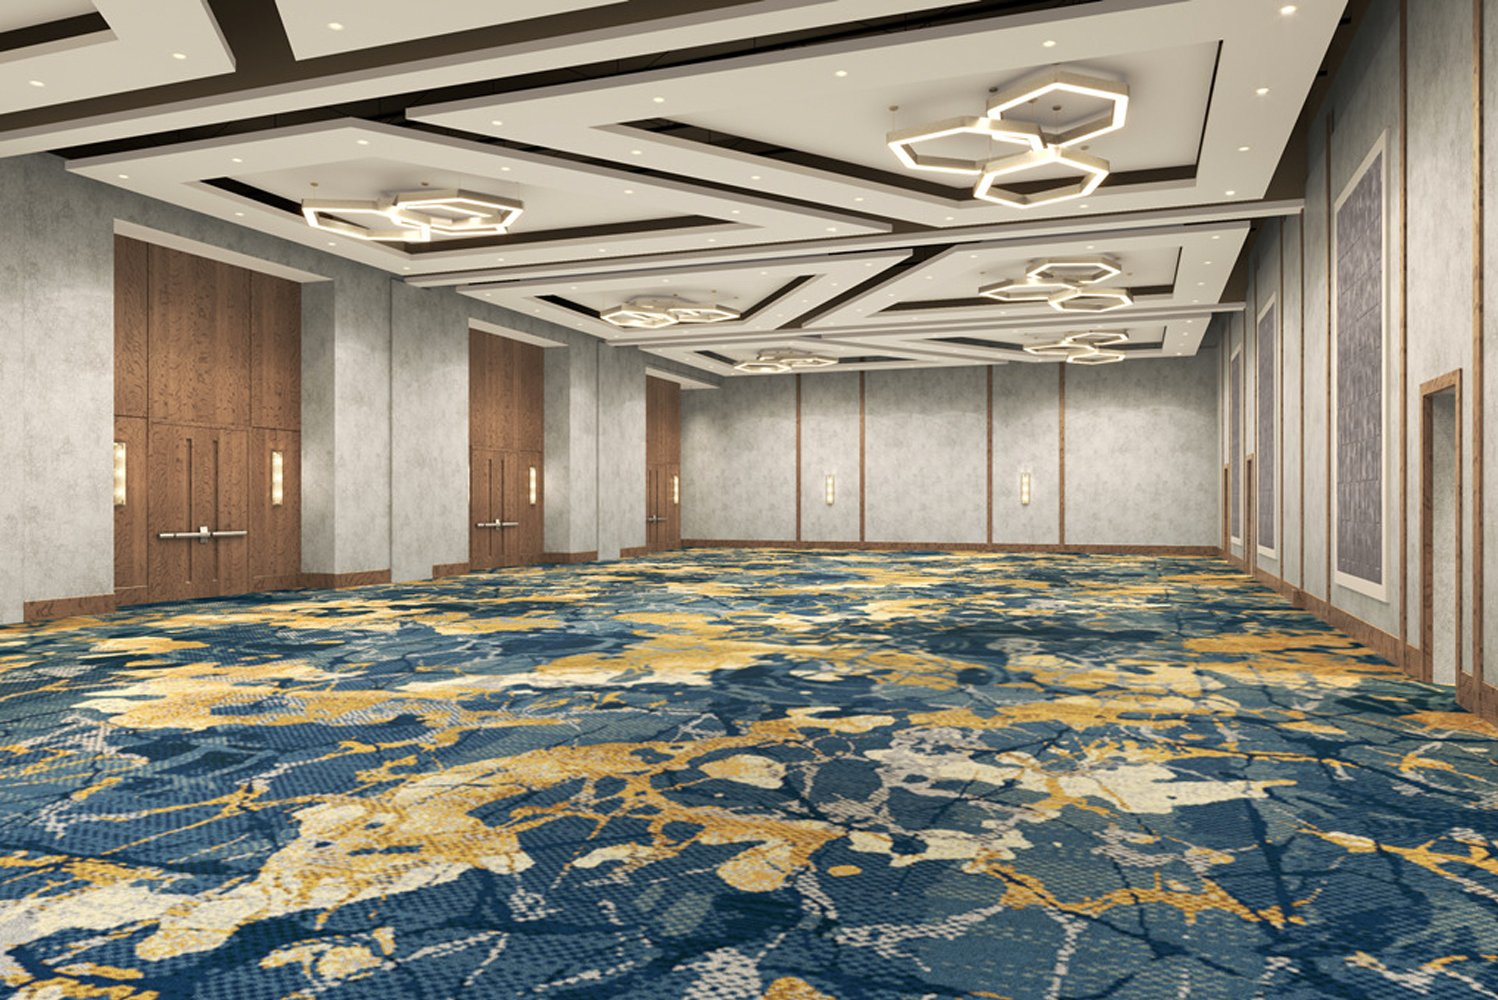 The Grand Ballroom,will be overhauled with textured walls, expansive 18- foot ceilings, new lighting accents and custom millwork evoking the tree cover of the area.